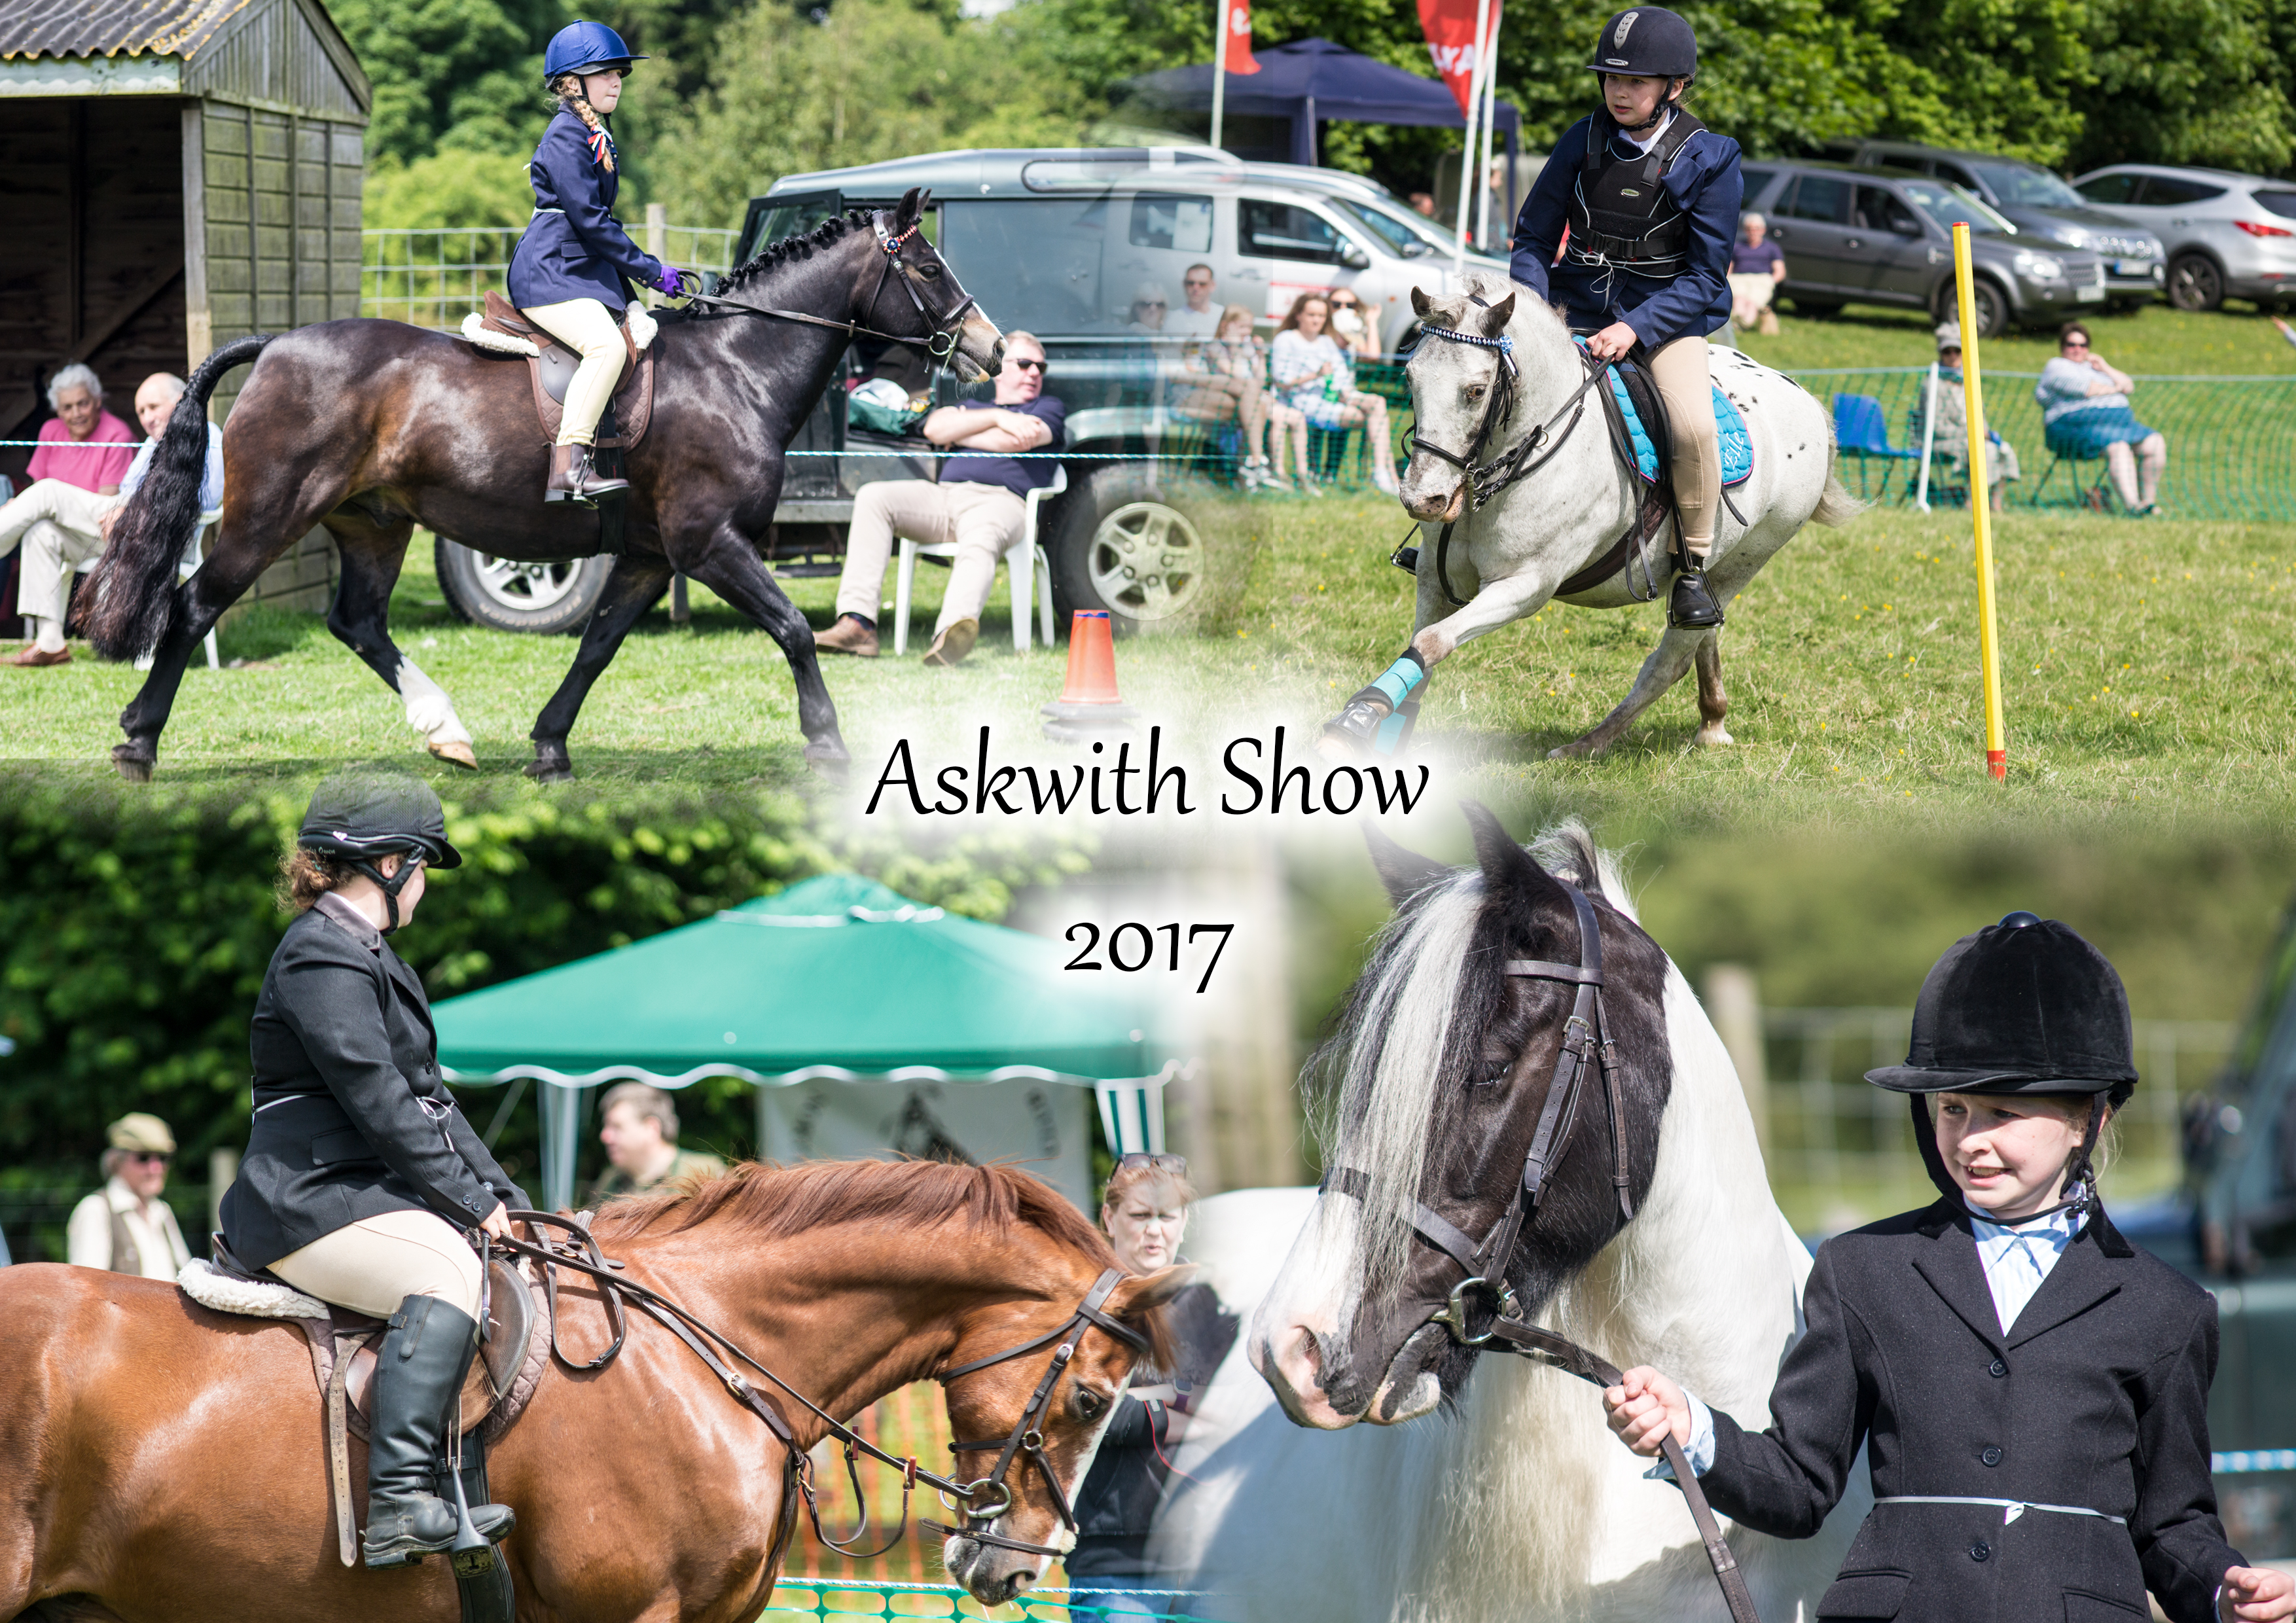 Askwith Show 2017